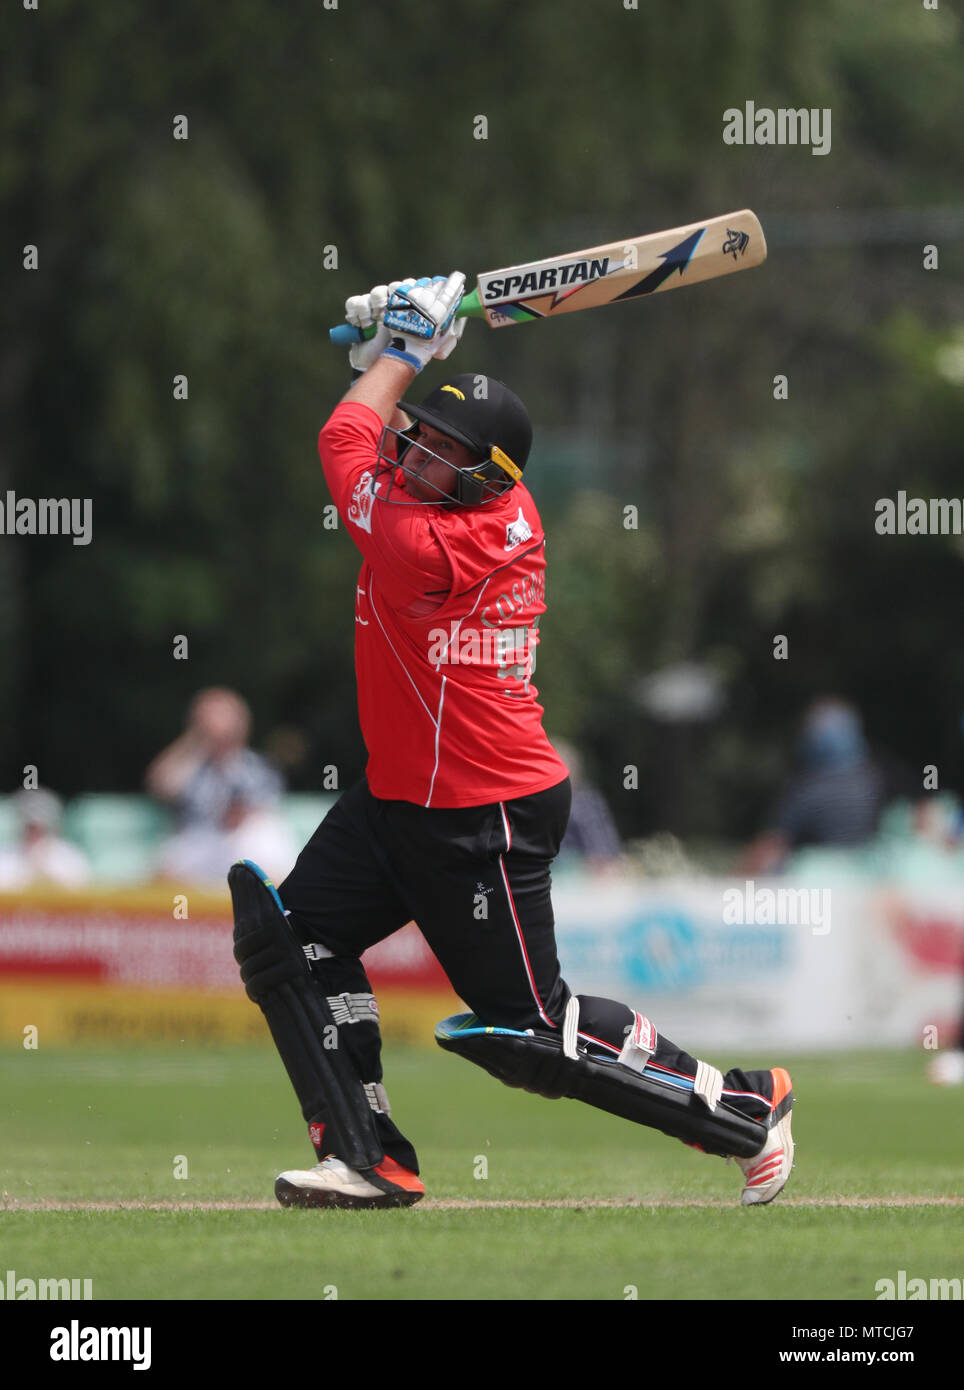 Leicestershire's Mark Cosgrove during the North Group match of the Royal London One Day Cup at New Road, Worcester. - Stock Image